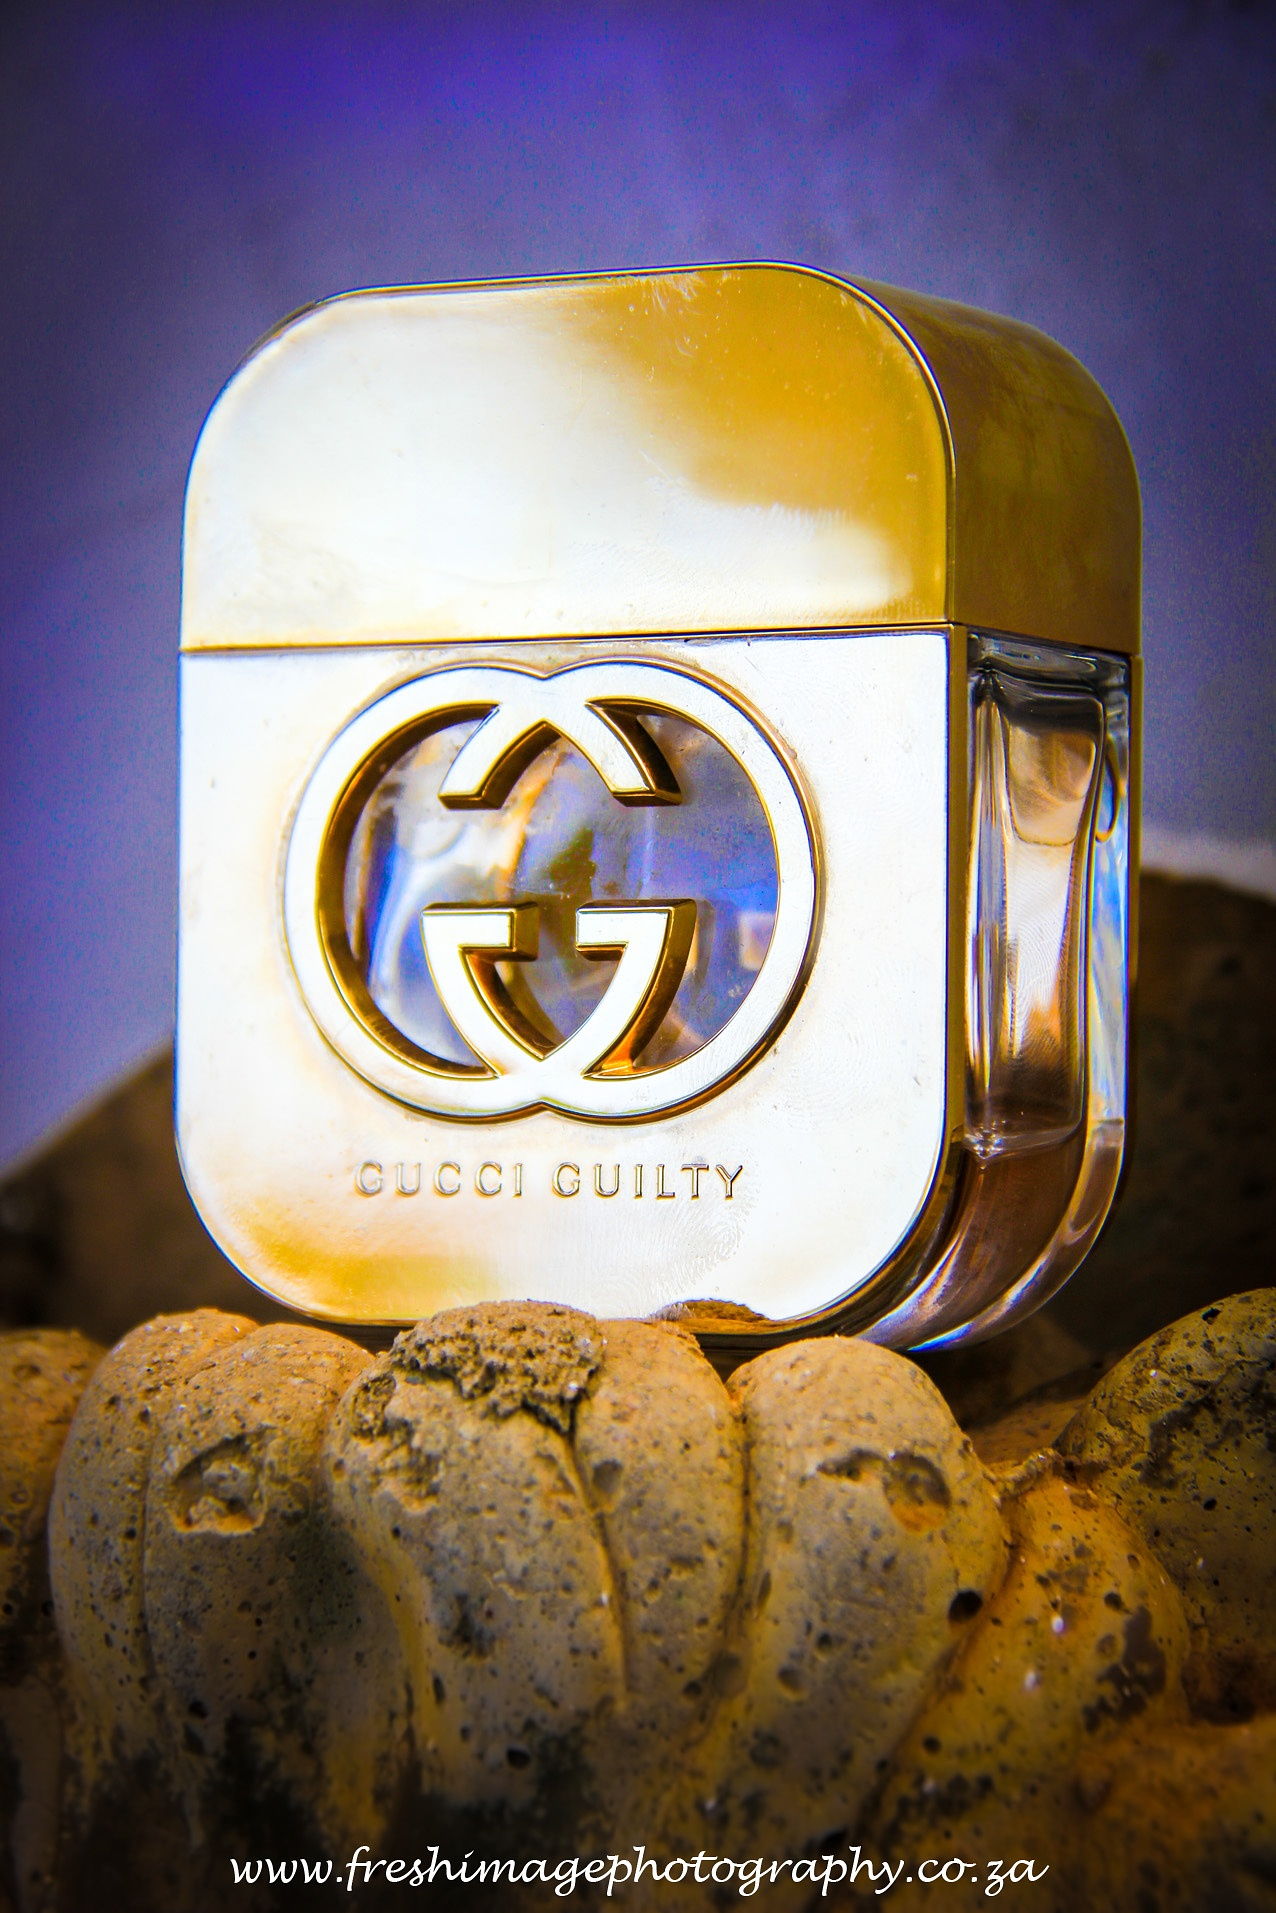 Gucci Guilty by Fresh Image Photography